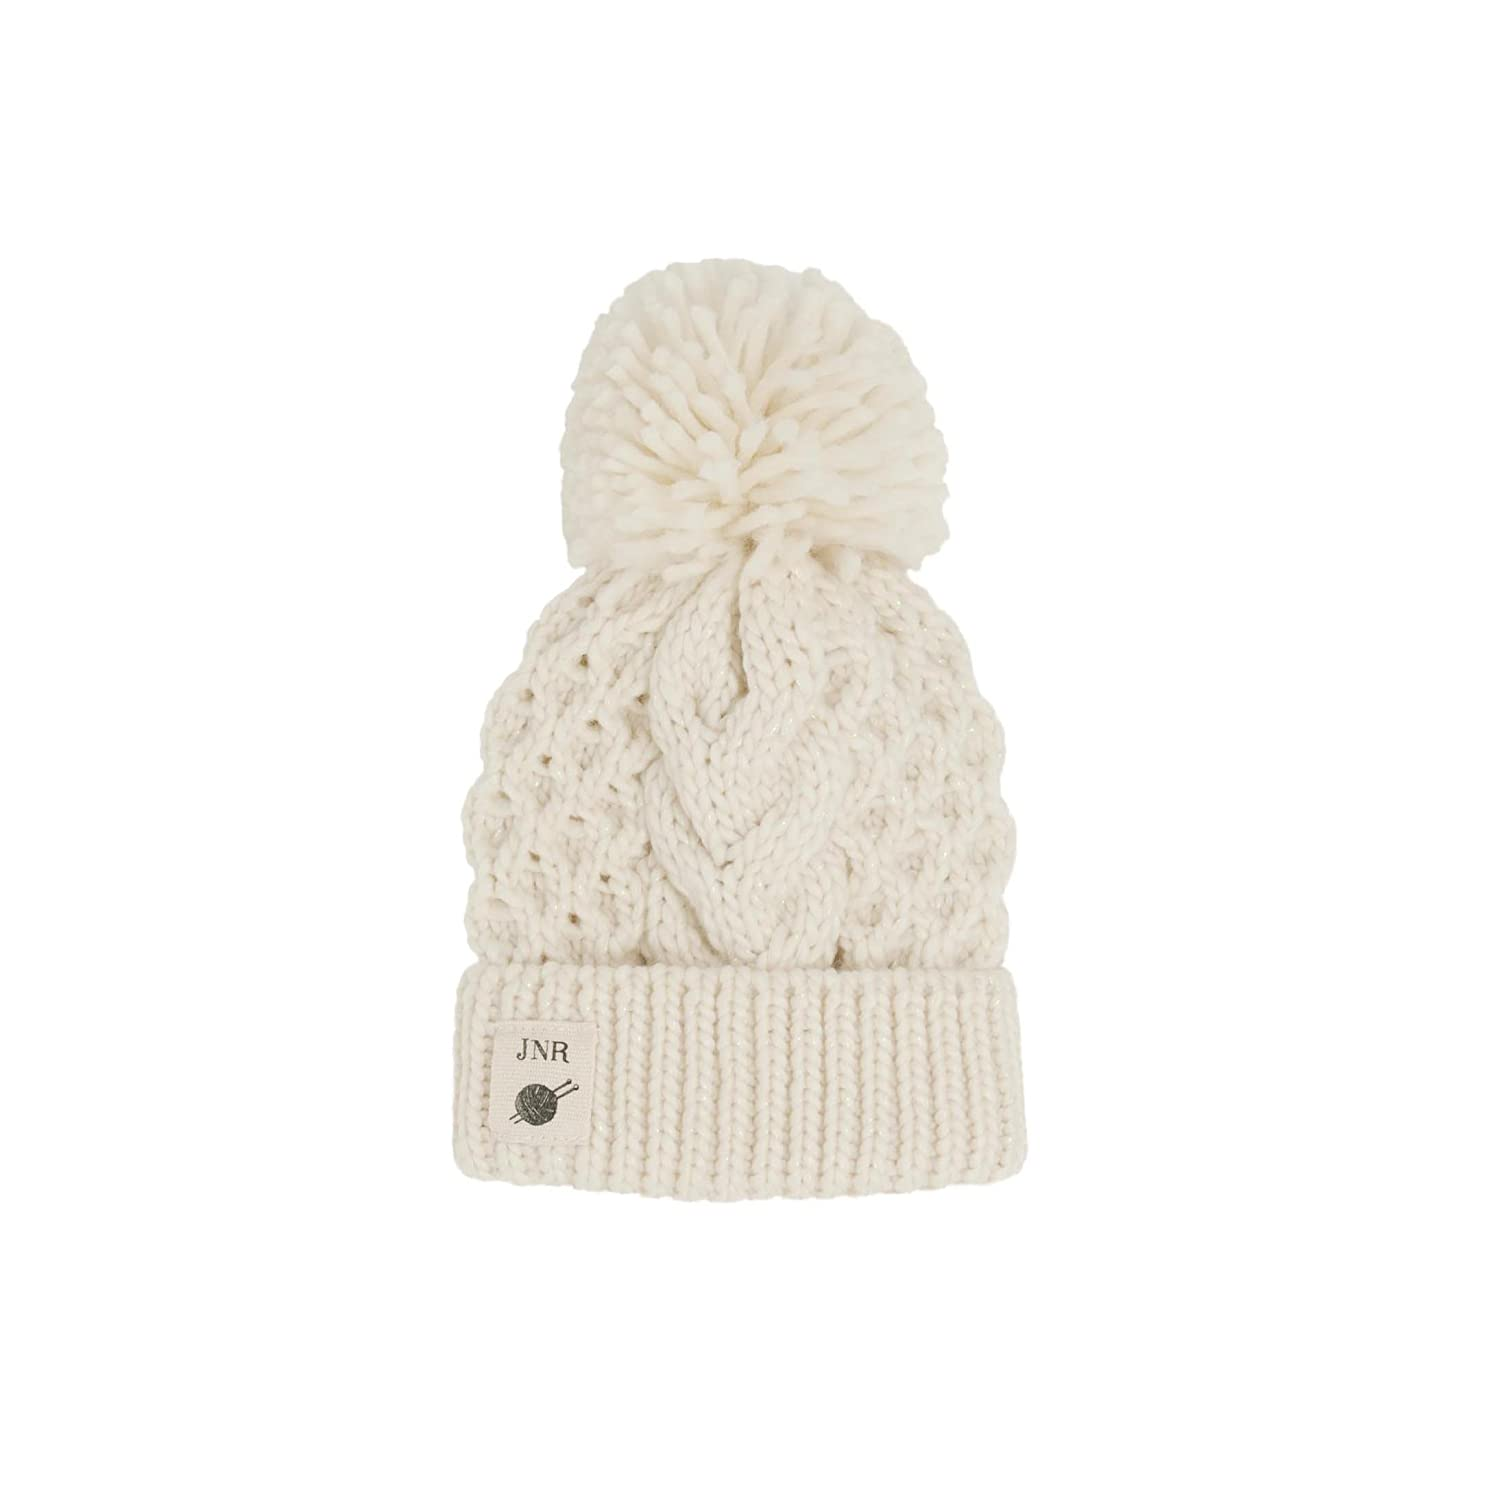 dc702e631f4 Kids Aran Cable Big Yarn Pom Pom Hat